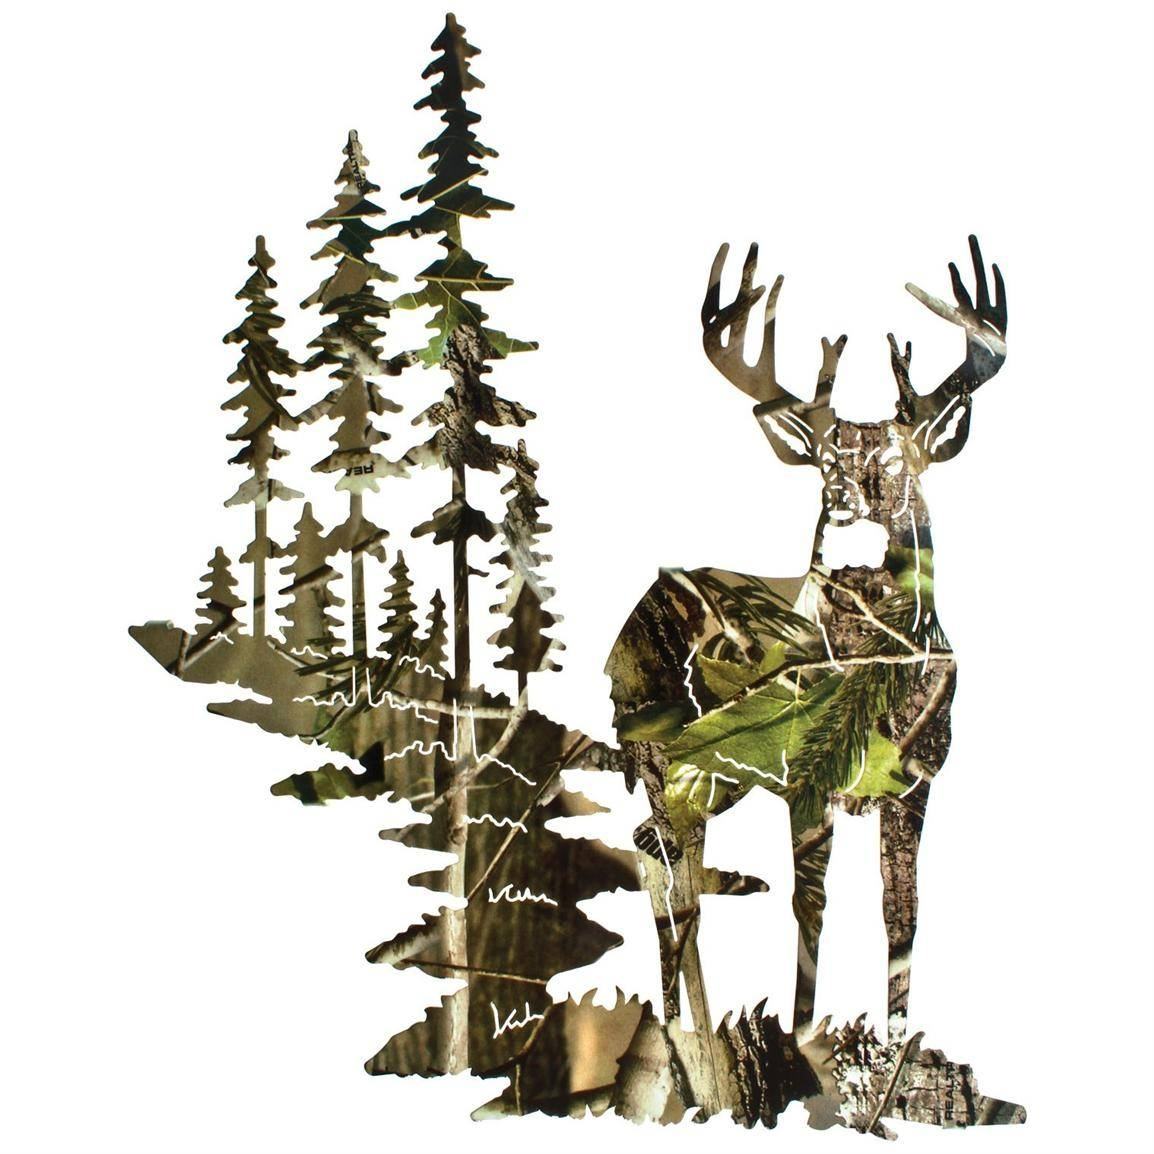 Camo Wall Decor Gallery – Home Wall Decoration Ideas Pertaining To Most Recent Camouflage Wall Art (View 6 of 20)